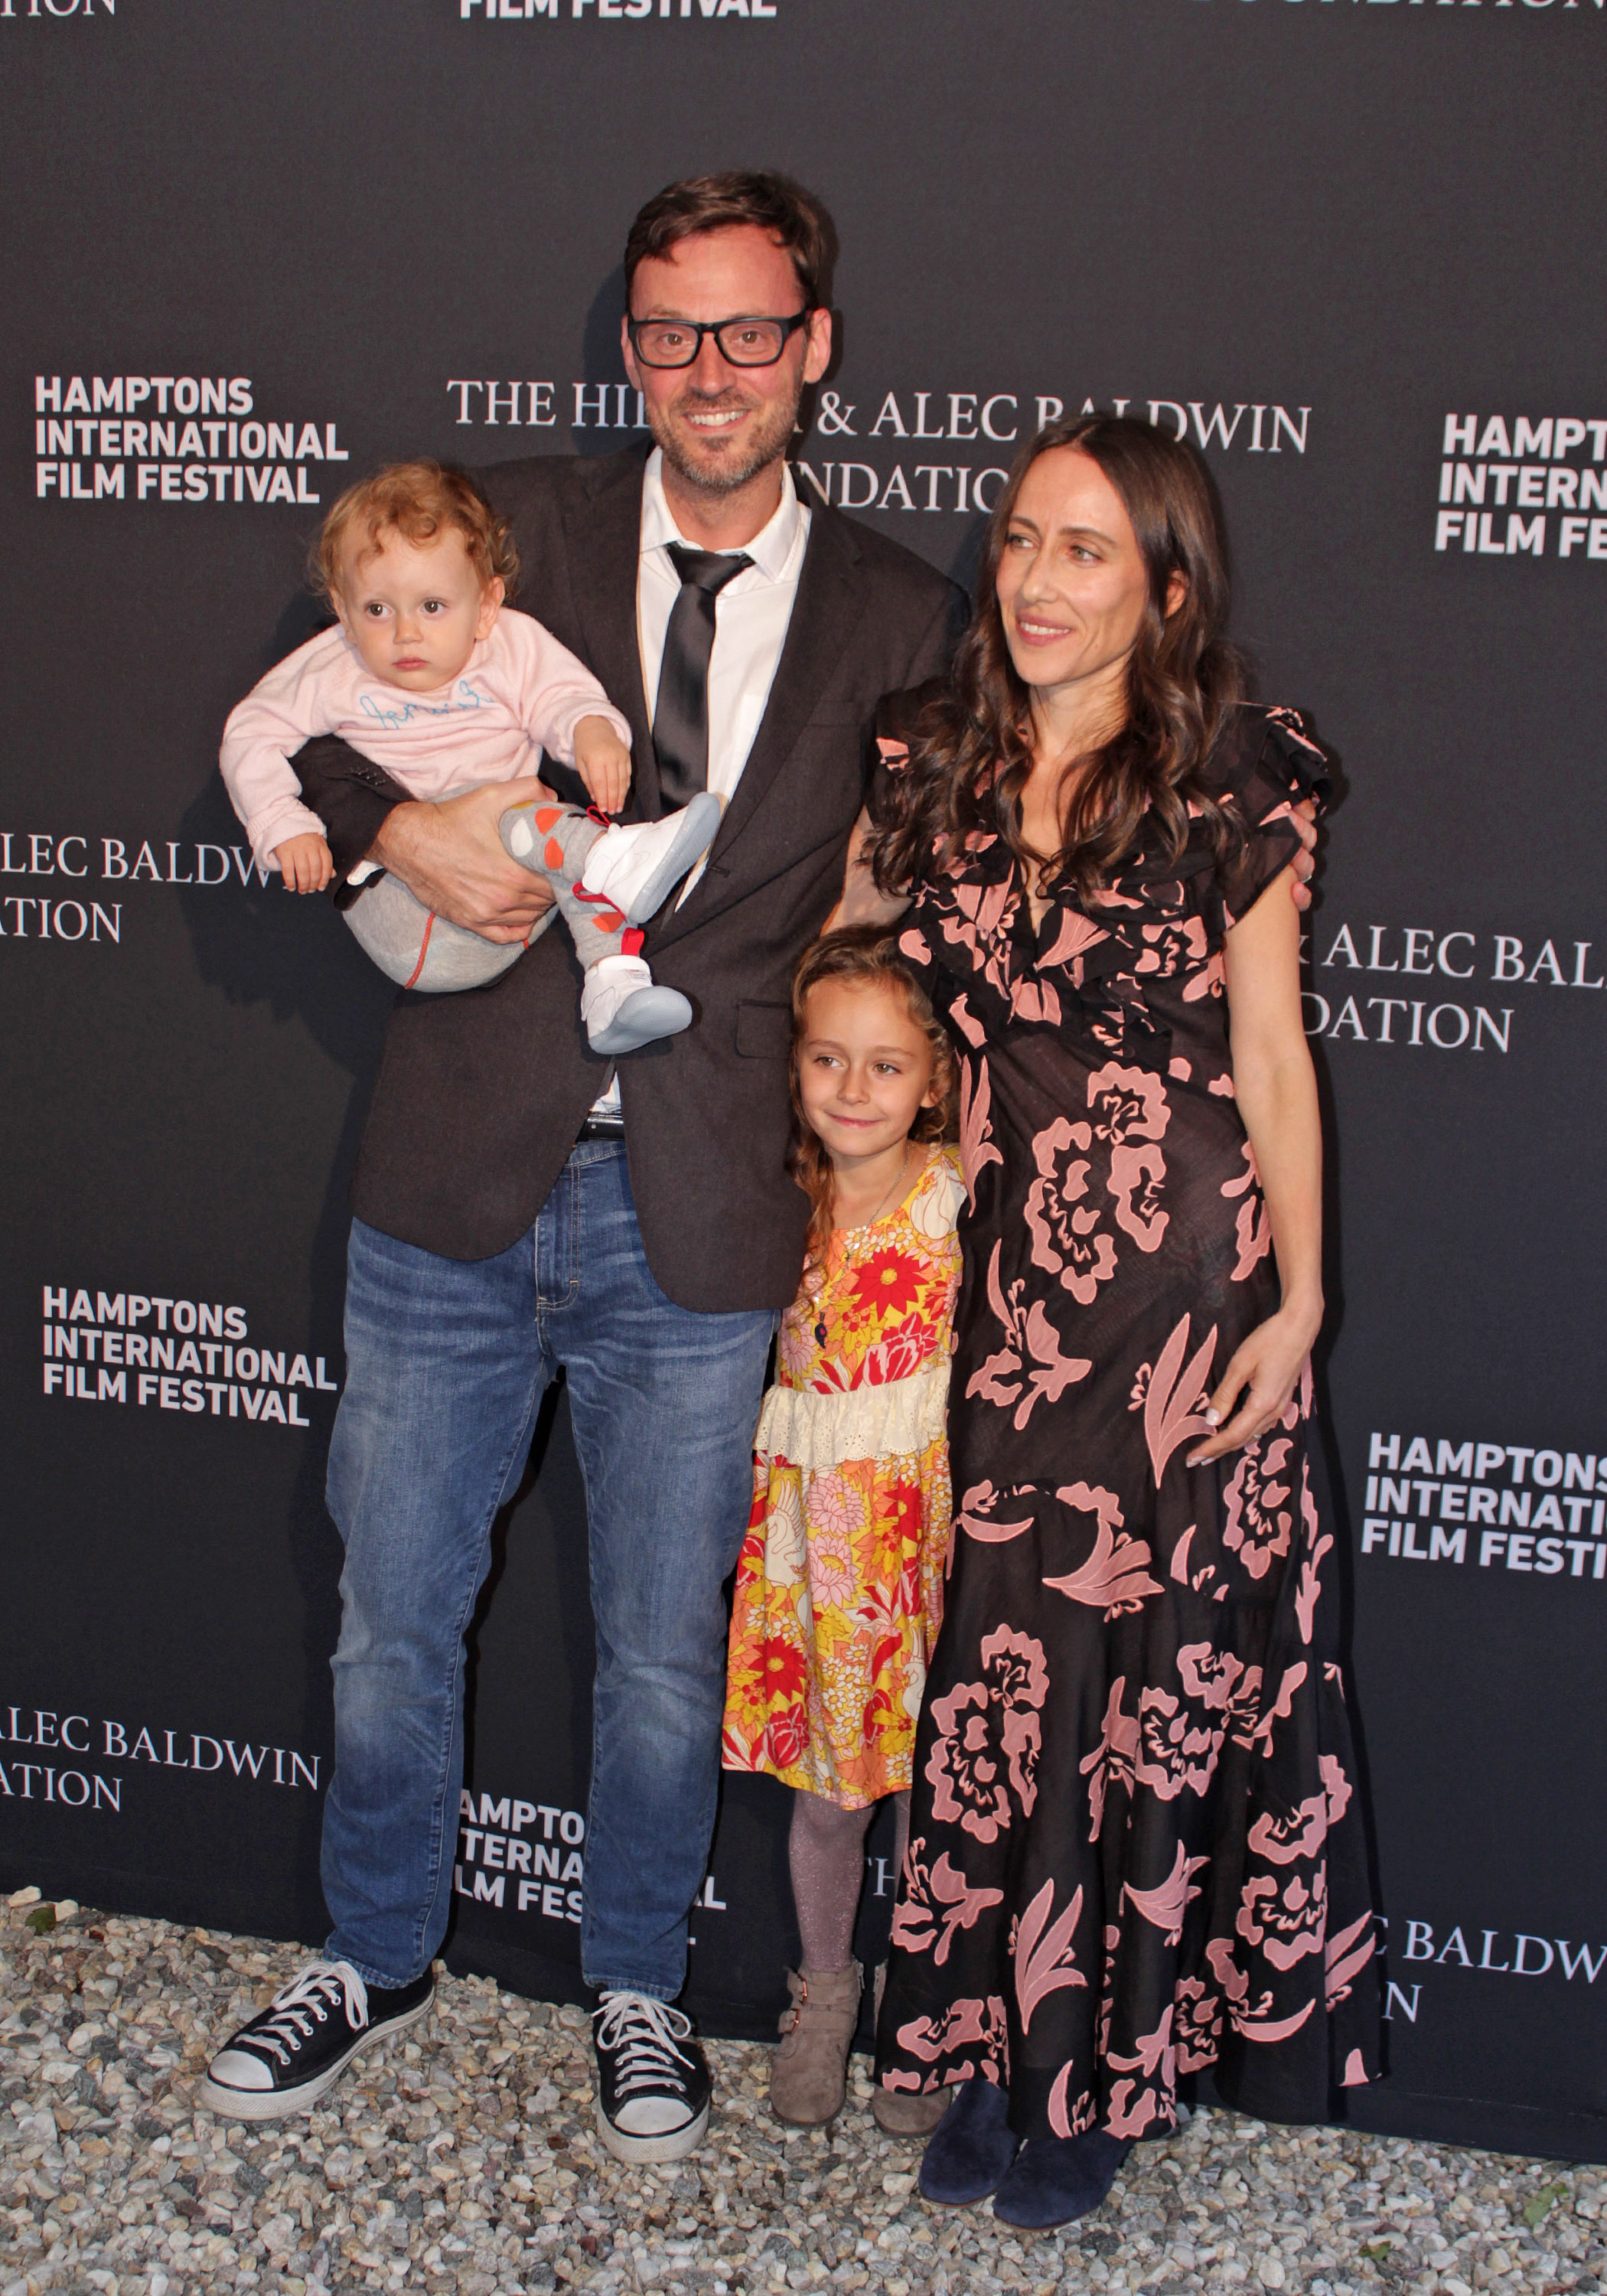 HIFF artistic director David Nugent with his wife Violet and their children.